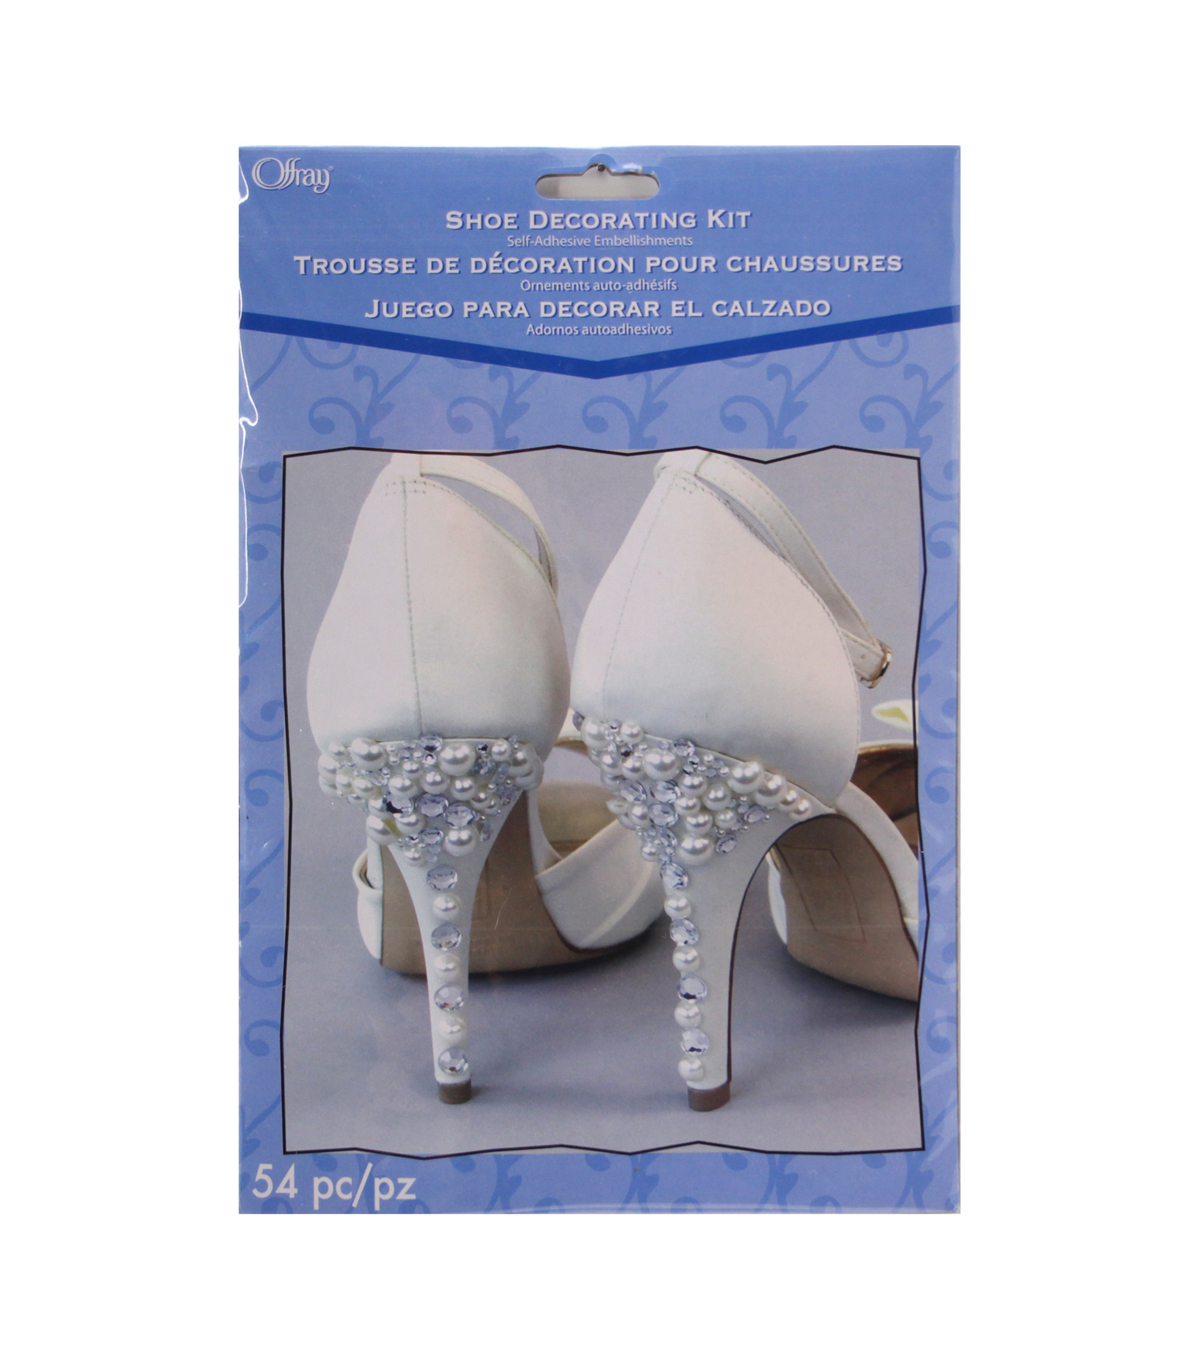 Pearl Shoe Decorating Kit